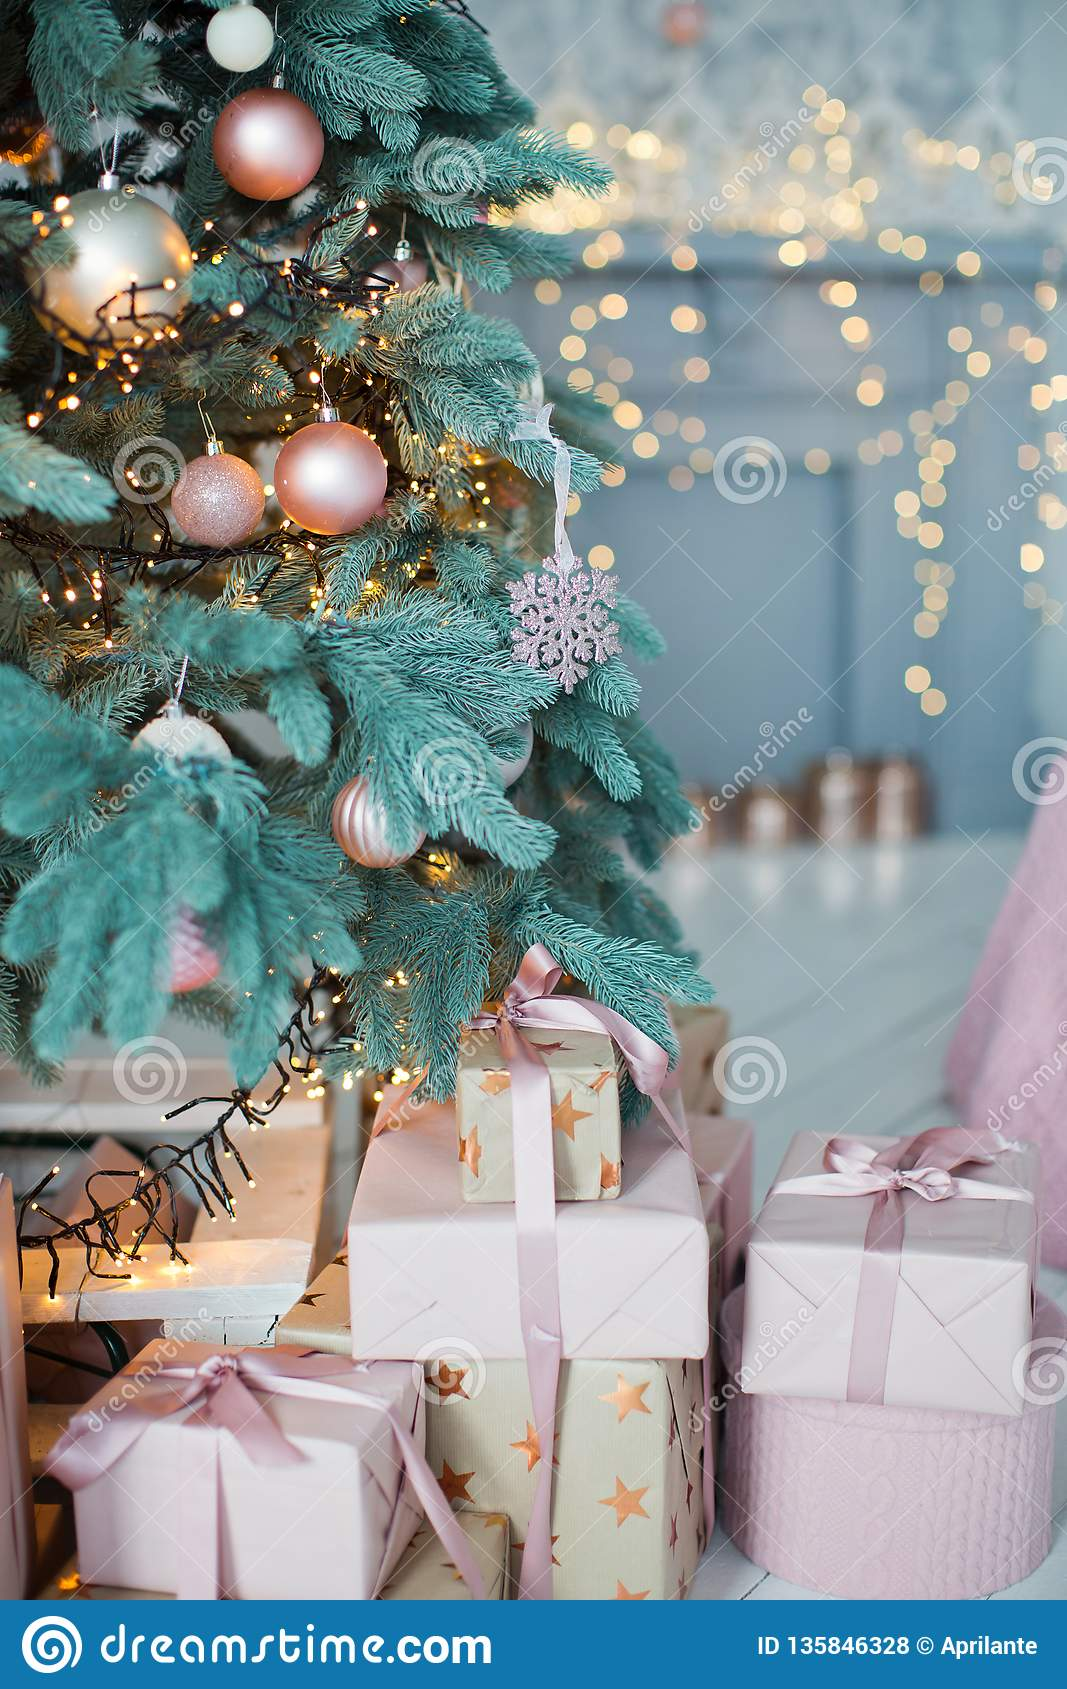 Christmas Tree With Pink And Gold Decorations Stock Photo Image Of Frost Fairy 135846328